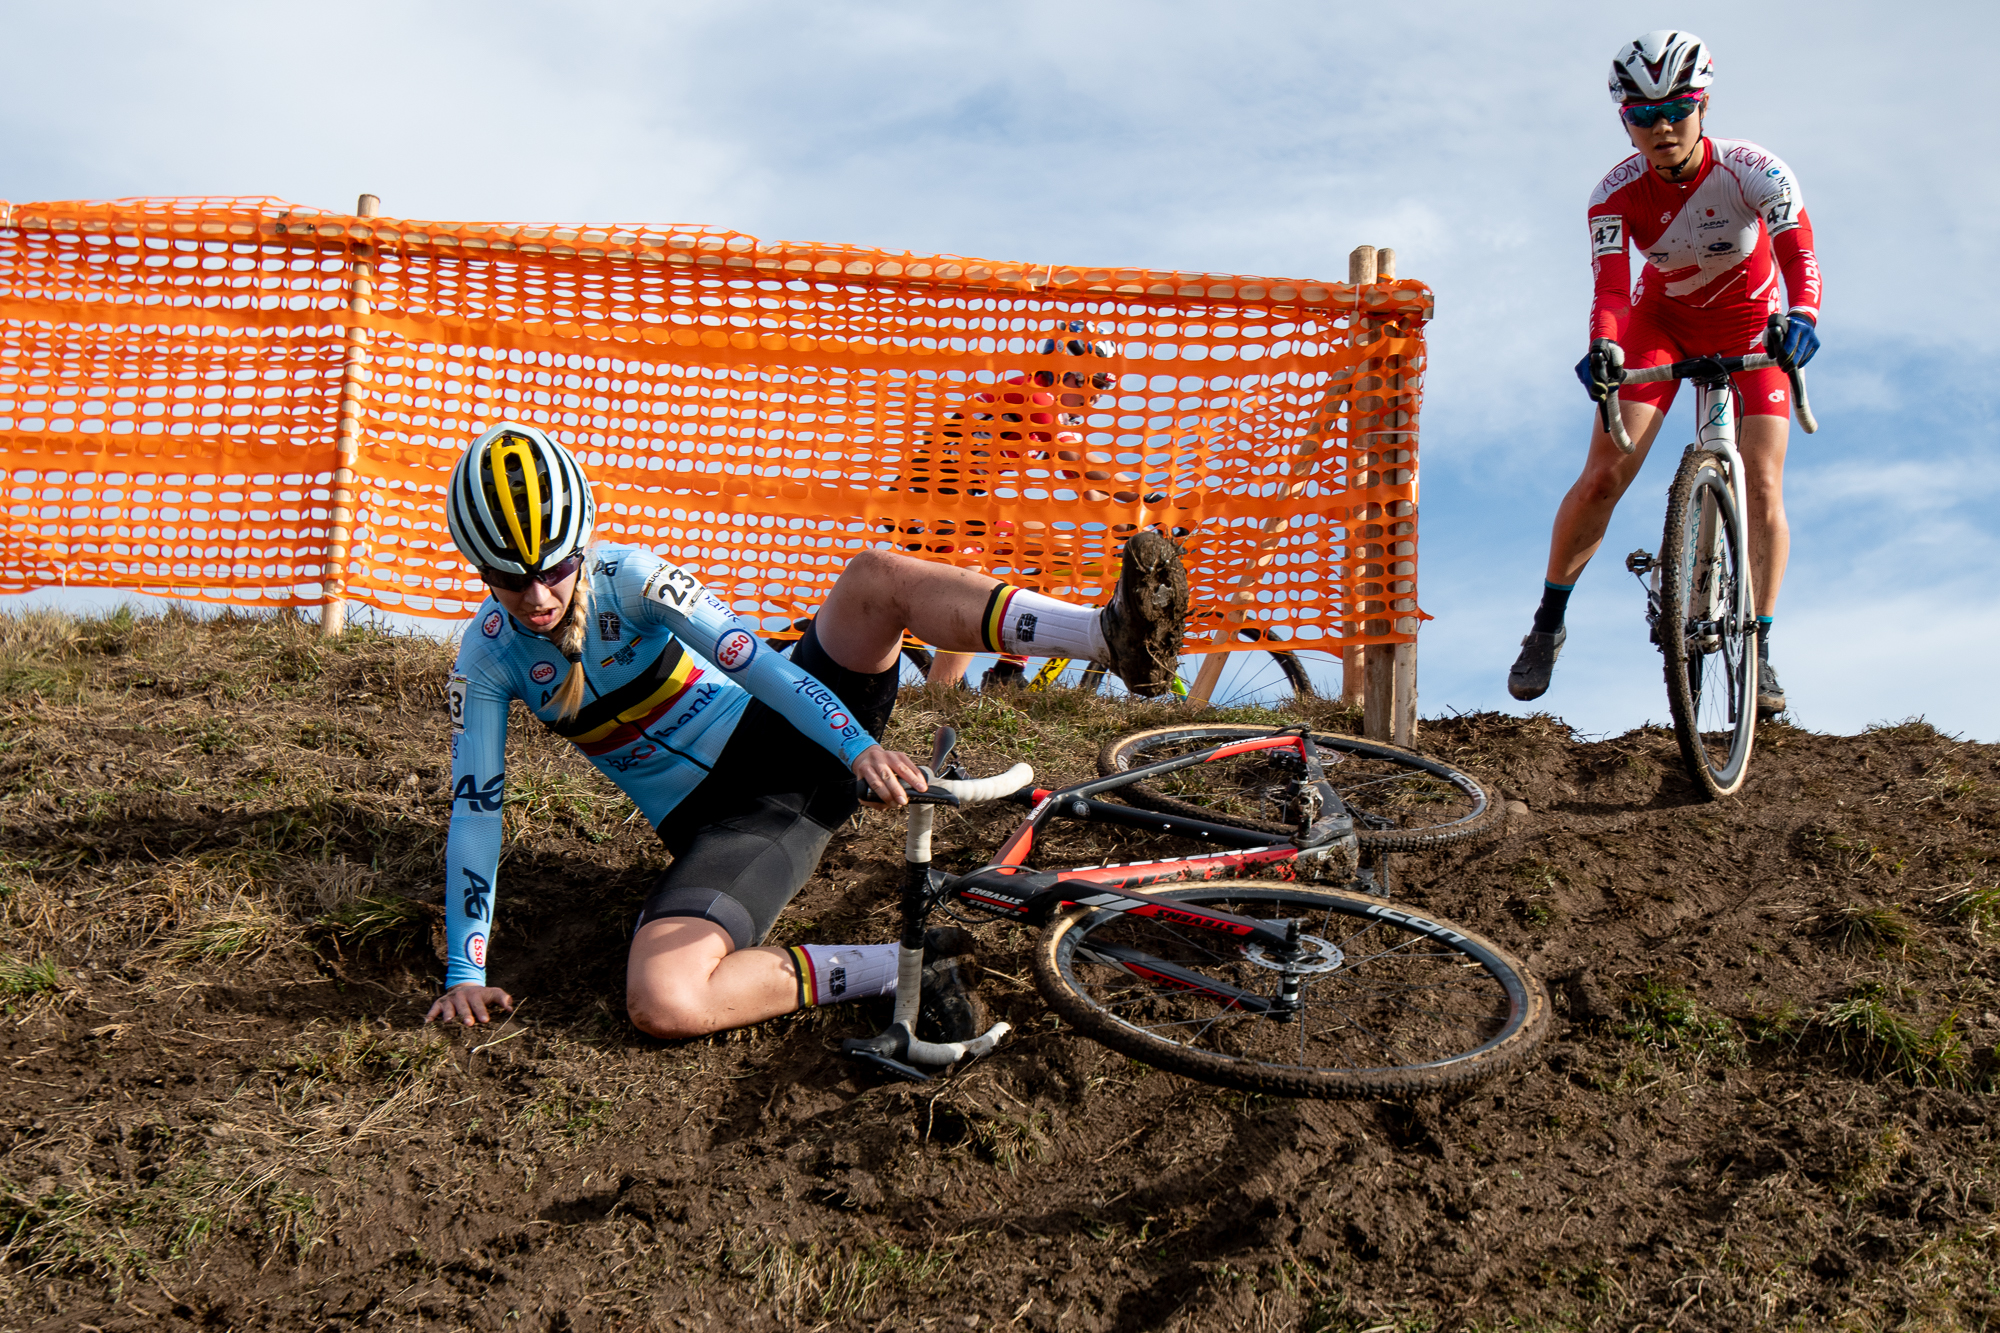 Mirthe Van Den Brande slides out on an off-camber descent at the UCI Cyclocross World Championships